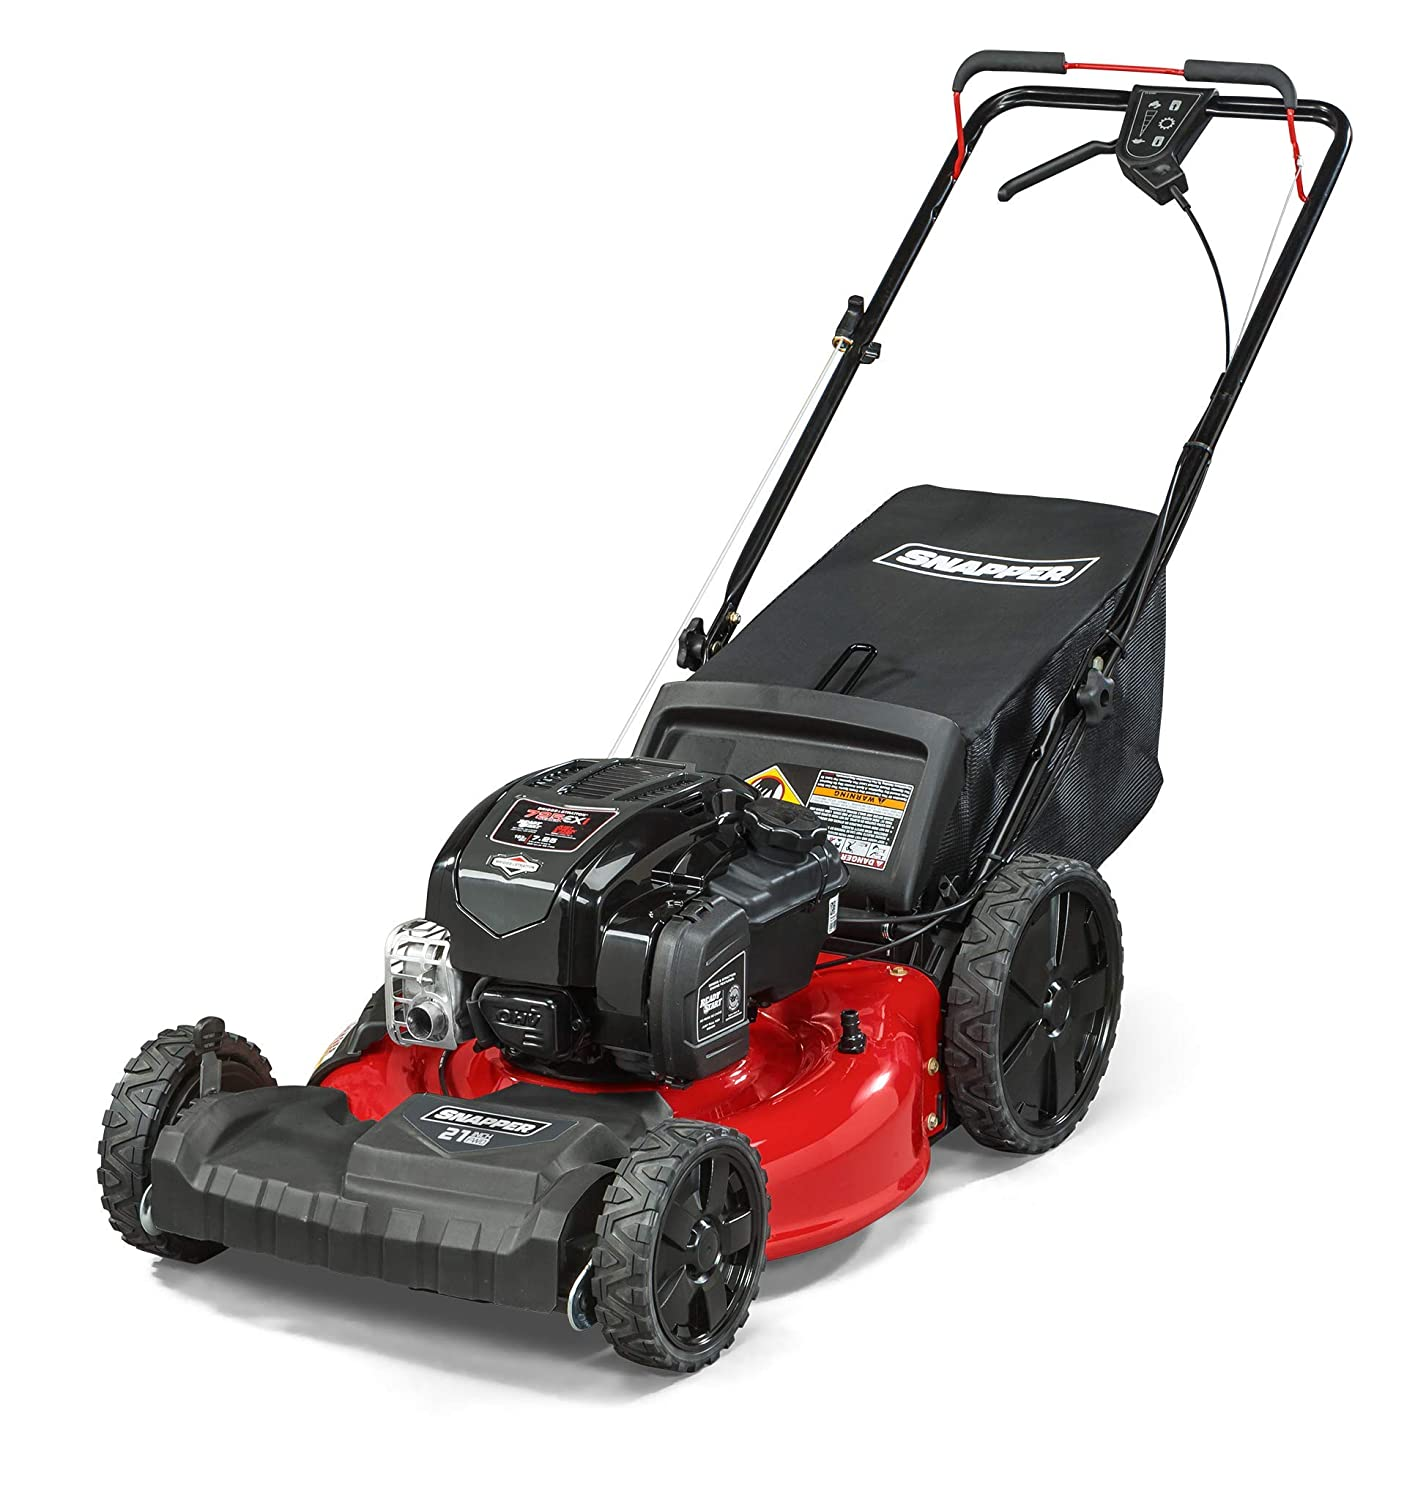 """Snapper 12AVB2A2707 21"""" Self Propelled Gas-Powered Mower Snapper Lawn Mower Reviews"""